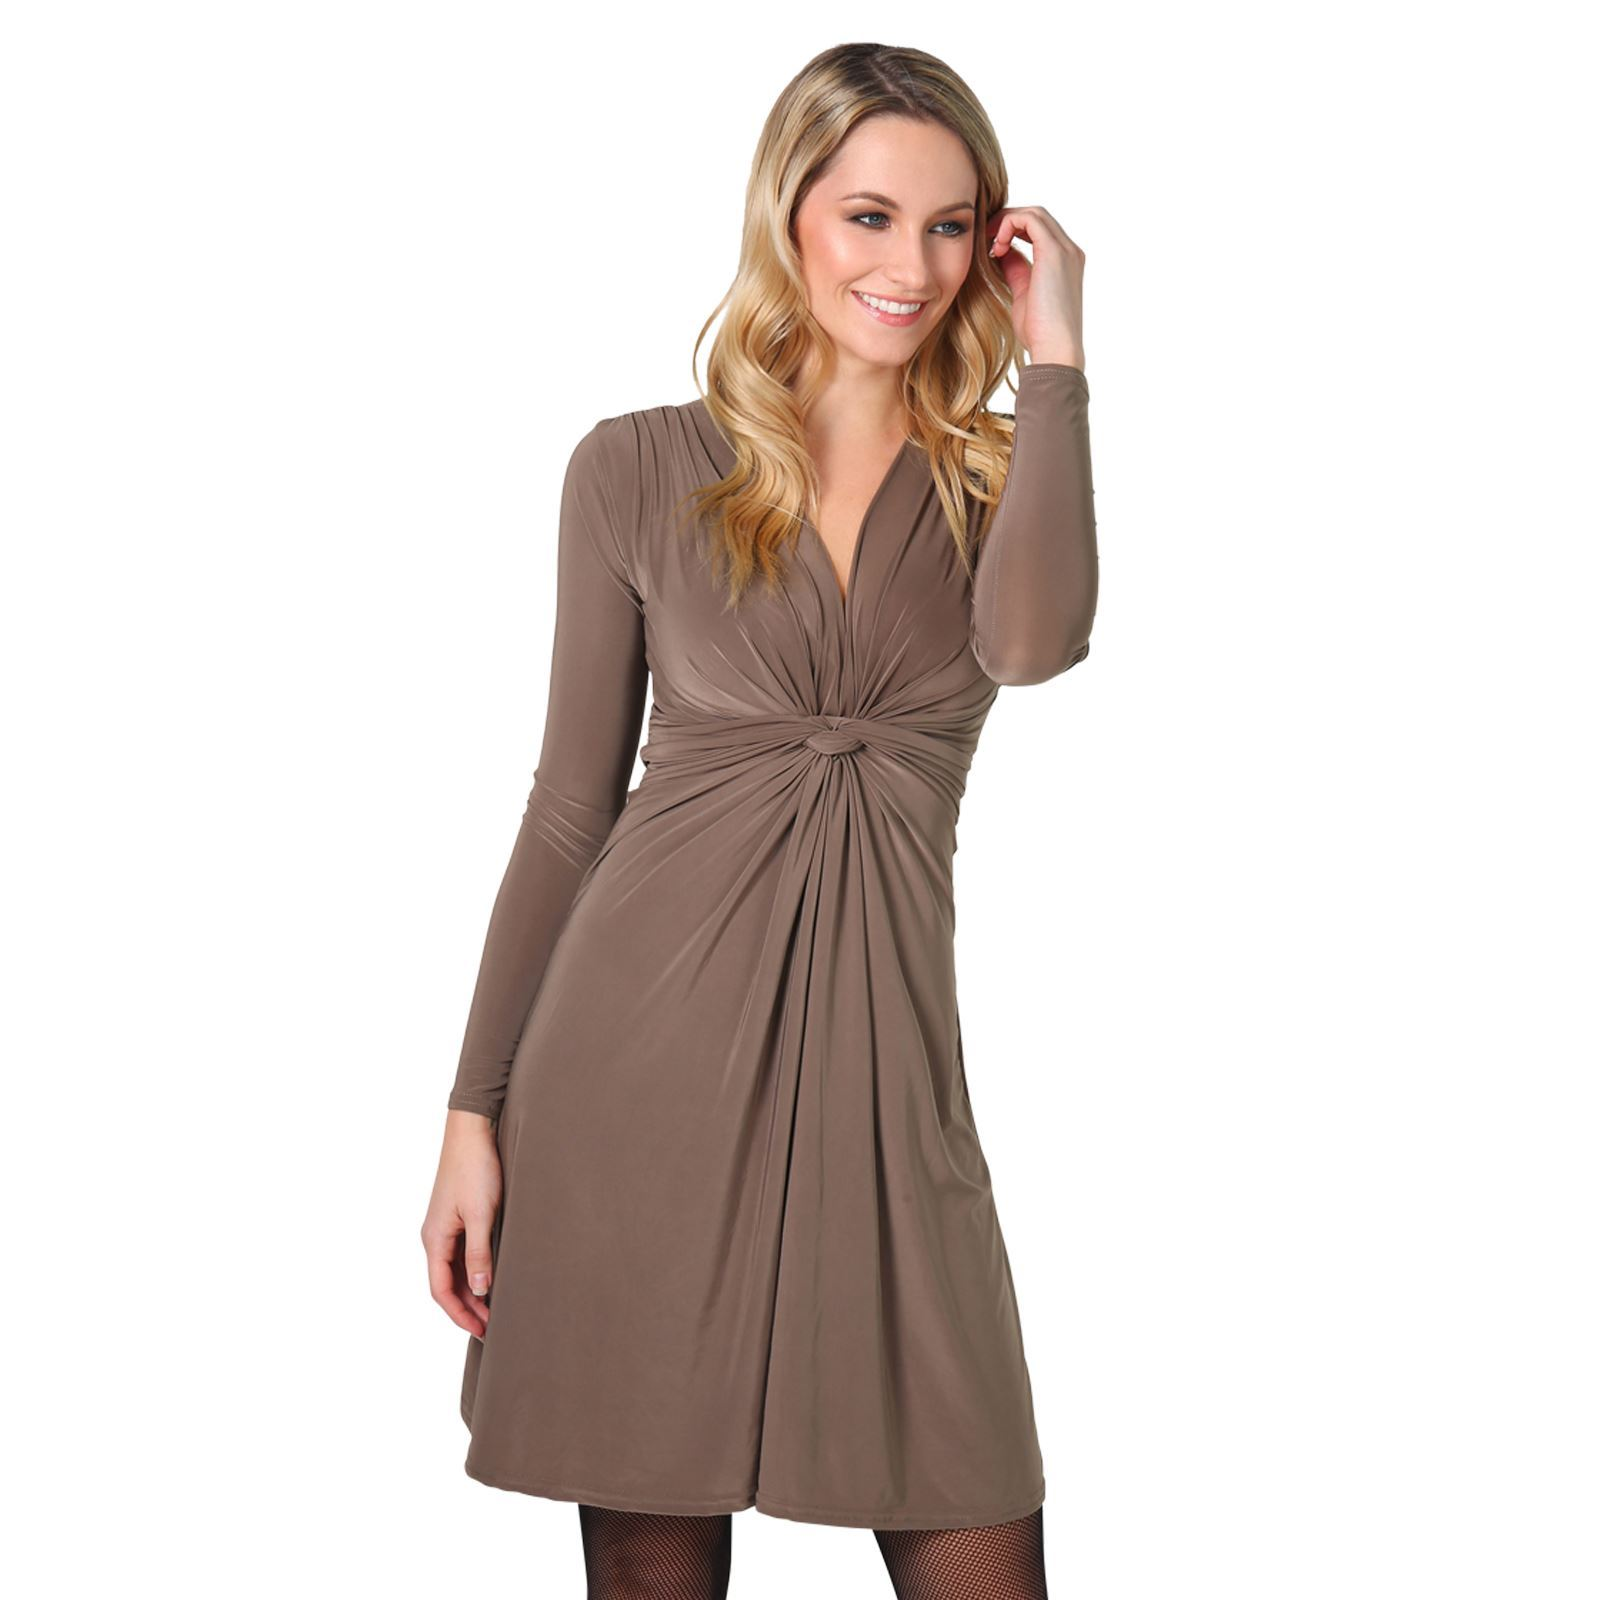 Womens-Ladies-V-Neck-Dress-Knee-Length-Mini-Ruched-Pleated-Swing-Top-Party thumbnail 59